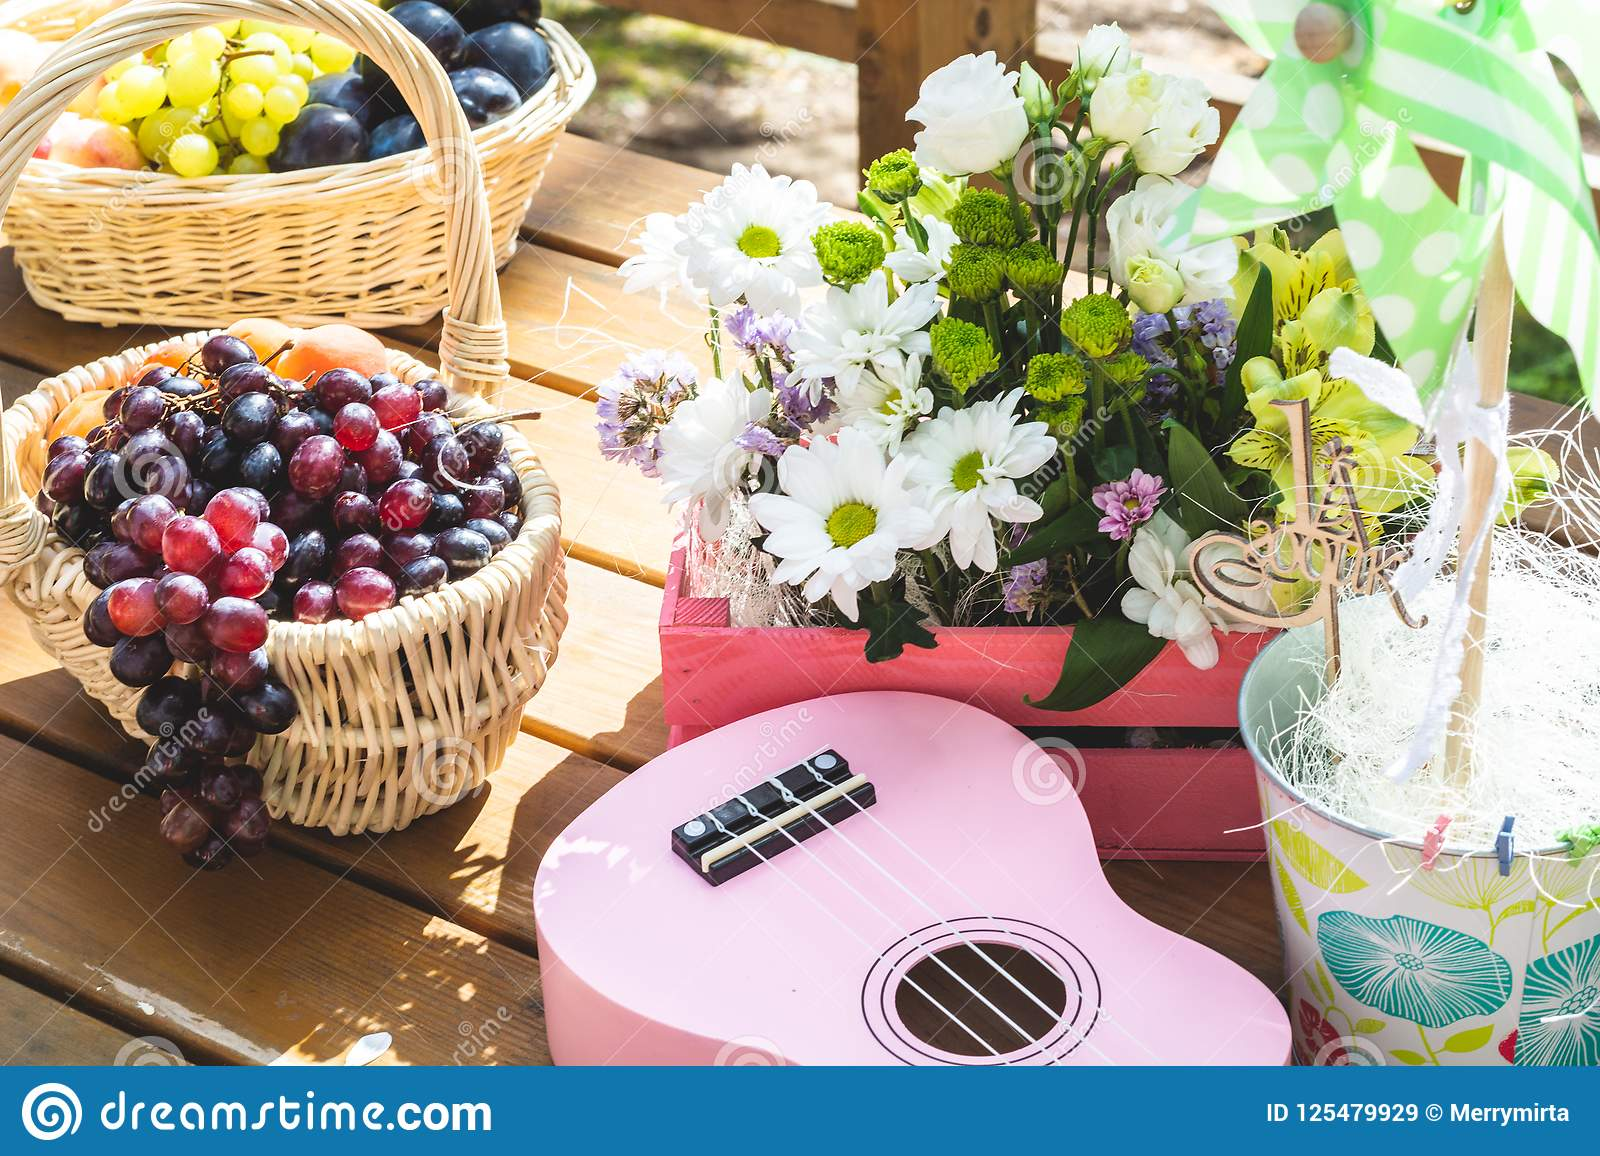 Picnic Party Table Decoration Baskets With Fruits On A Wooden Table Flowers Pink Small Guitar And Pinwheel Stock Image Image Of Garden Fruit 125479929